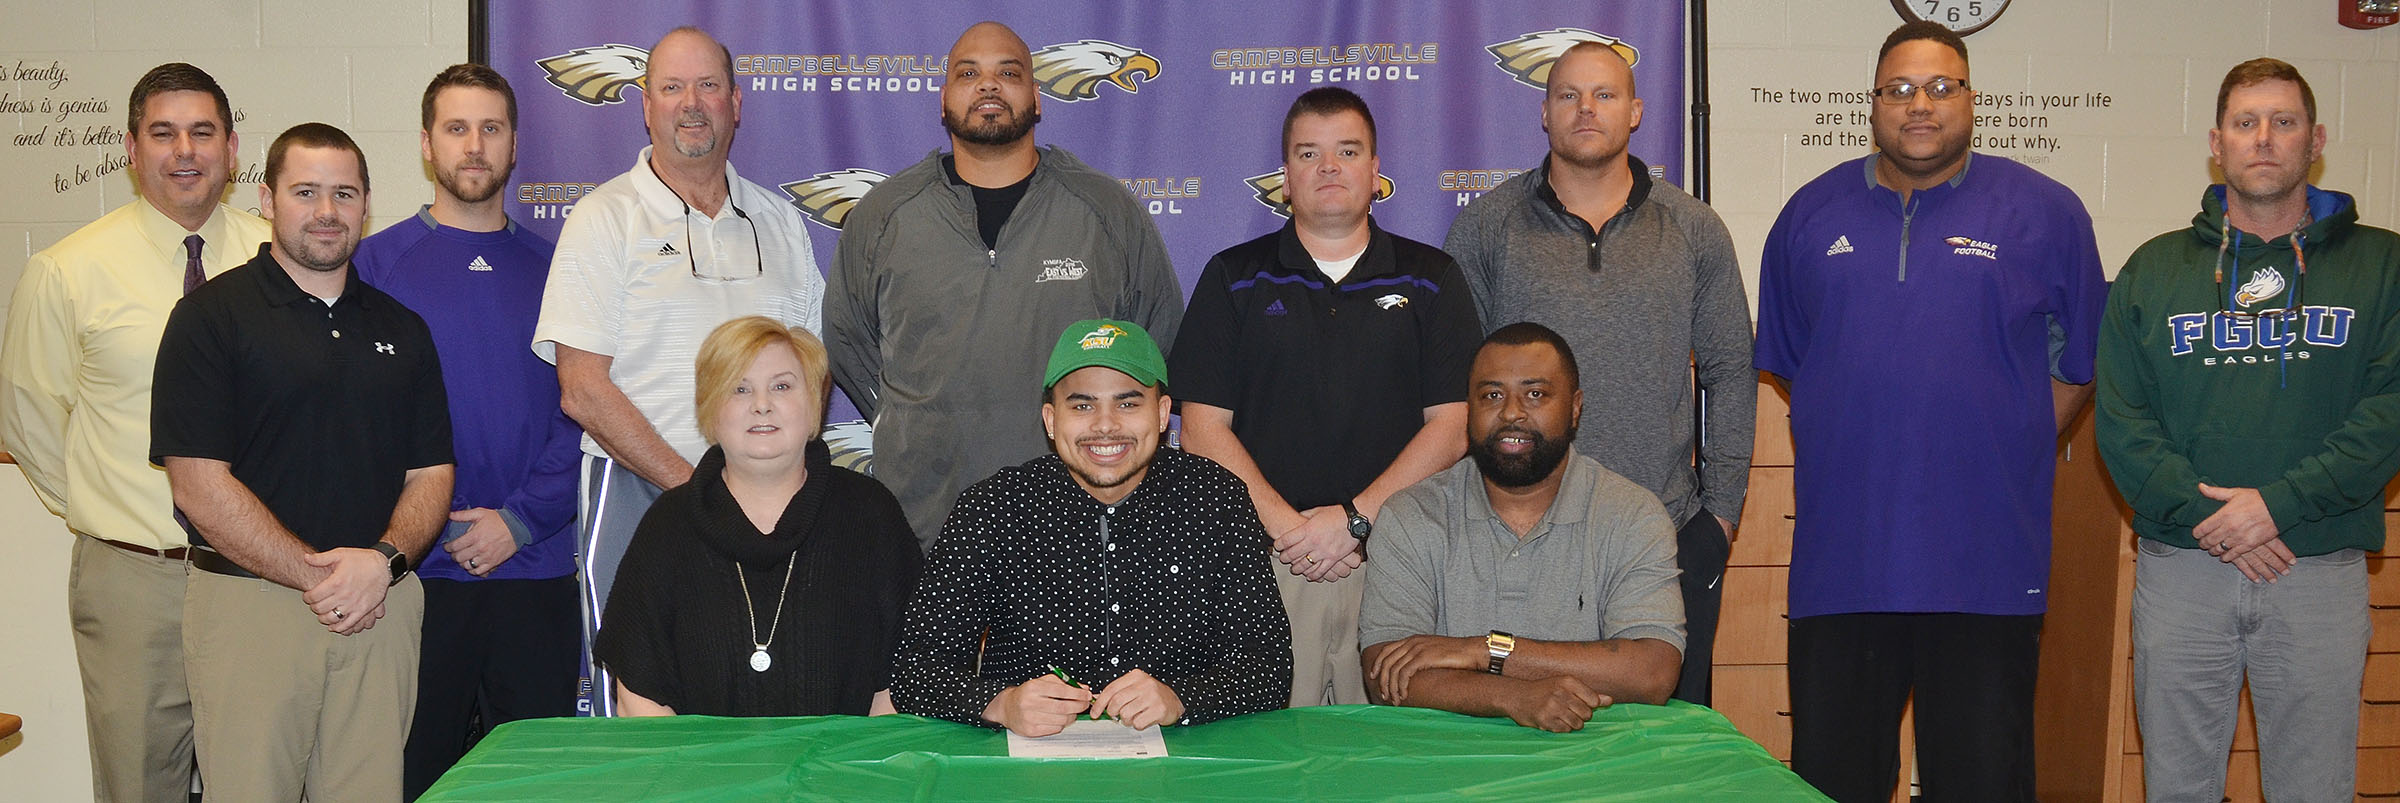 CHS seniors Micah Corley and Arick Groves will continue their academic and football careers at Kentucky State University this fall. The two signed their letters of intent in a special ceremony on Monday, Feb. 6. Pictured with Groves, front, center, are his mother Emily Farris and his father Ty Groves. Back, from left, CHS Principal Kirby Smith, assistant football coaches Blake Milby and Tyler Hardy, CHS Athletic Director Tim Davis, assistant football coach Aaron Webb, head football coach Dale Estes and assistant football coaches Robbie Gribbins, Bronson Gowdy and Herb Wiseman.